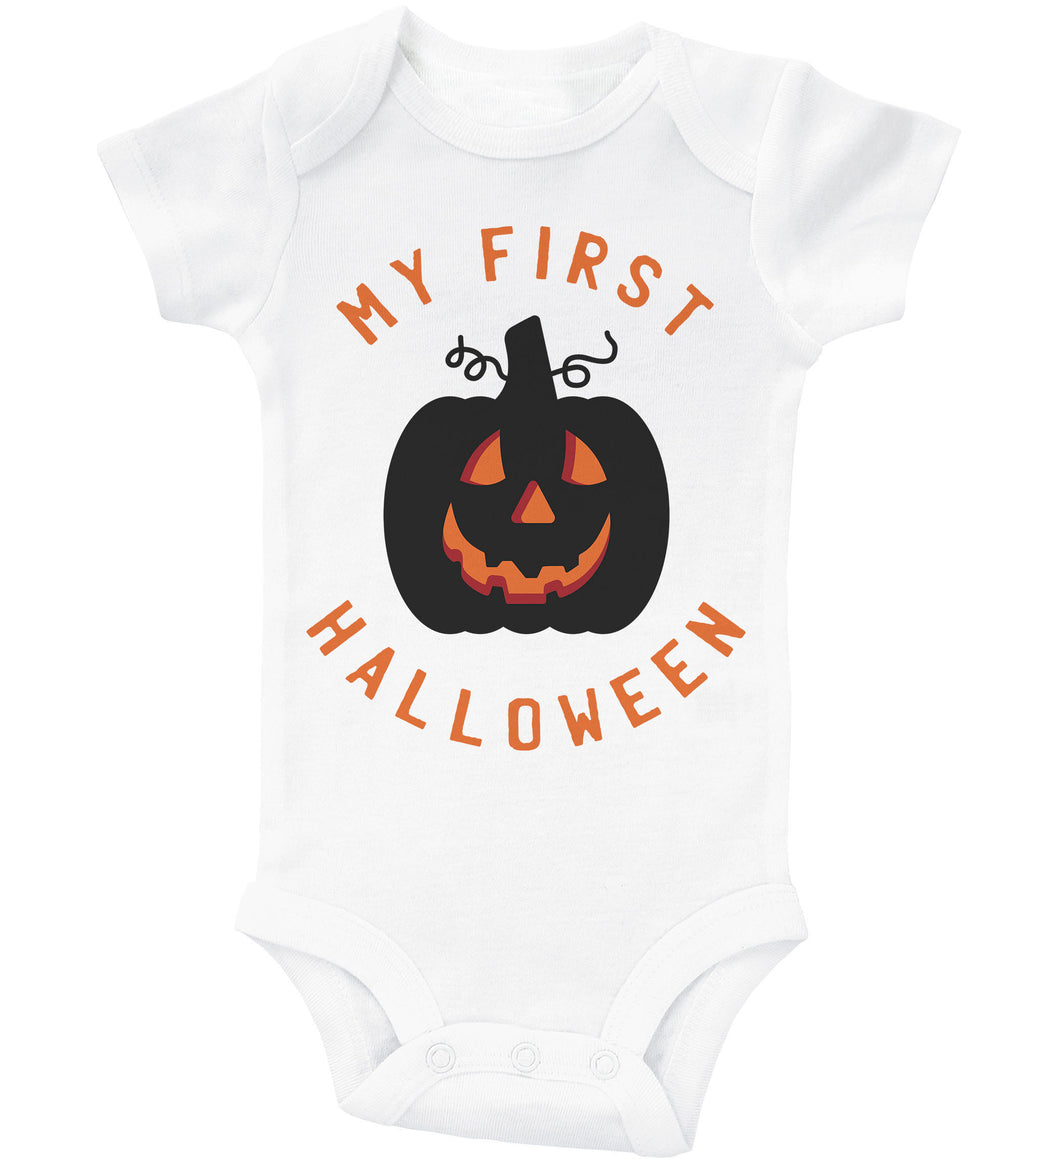 My First Halloween - Glowing Pumpkin / Basic Onesie